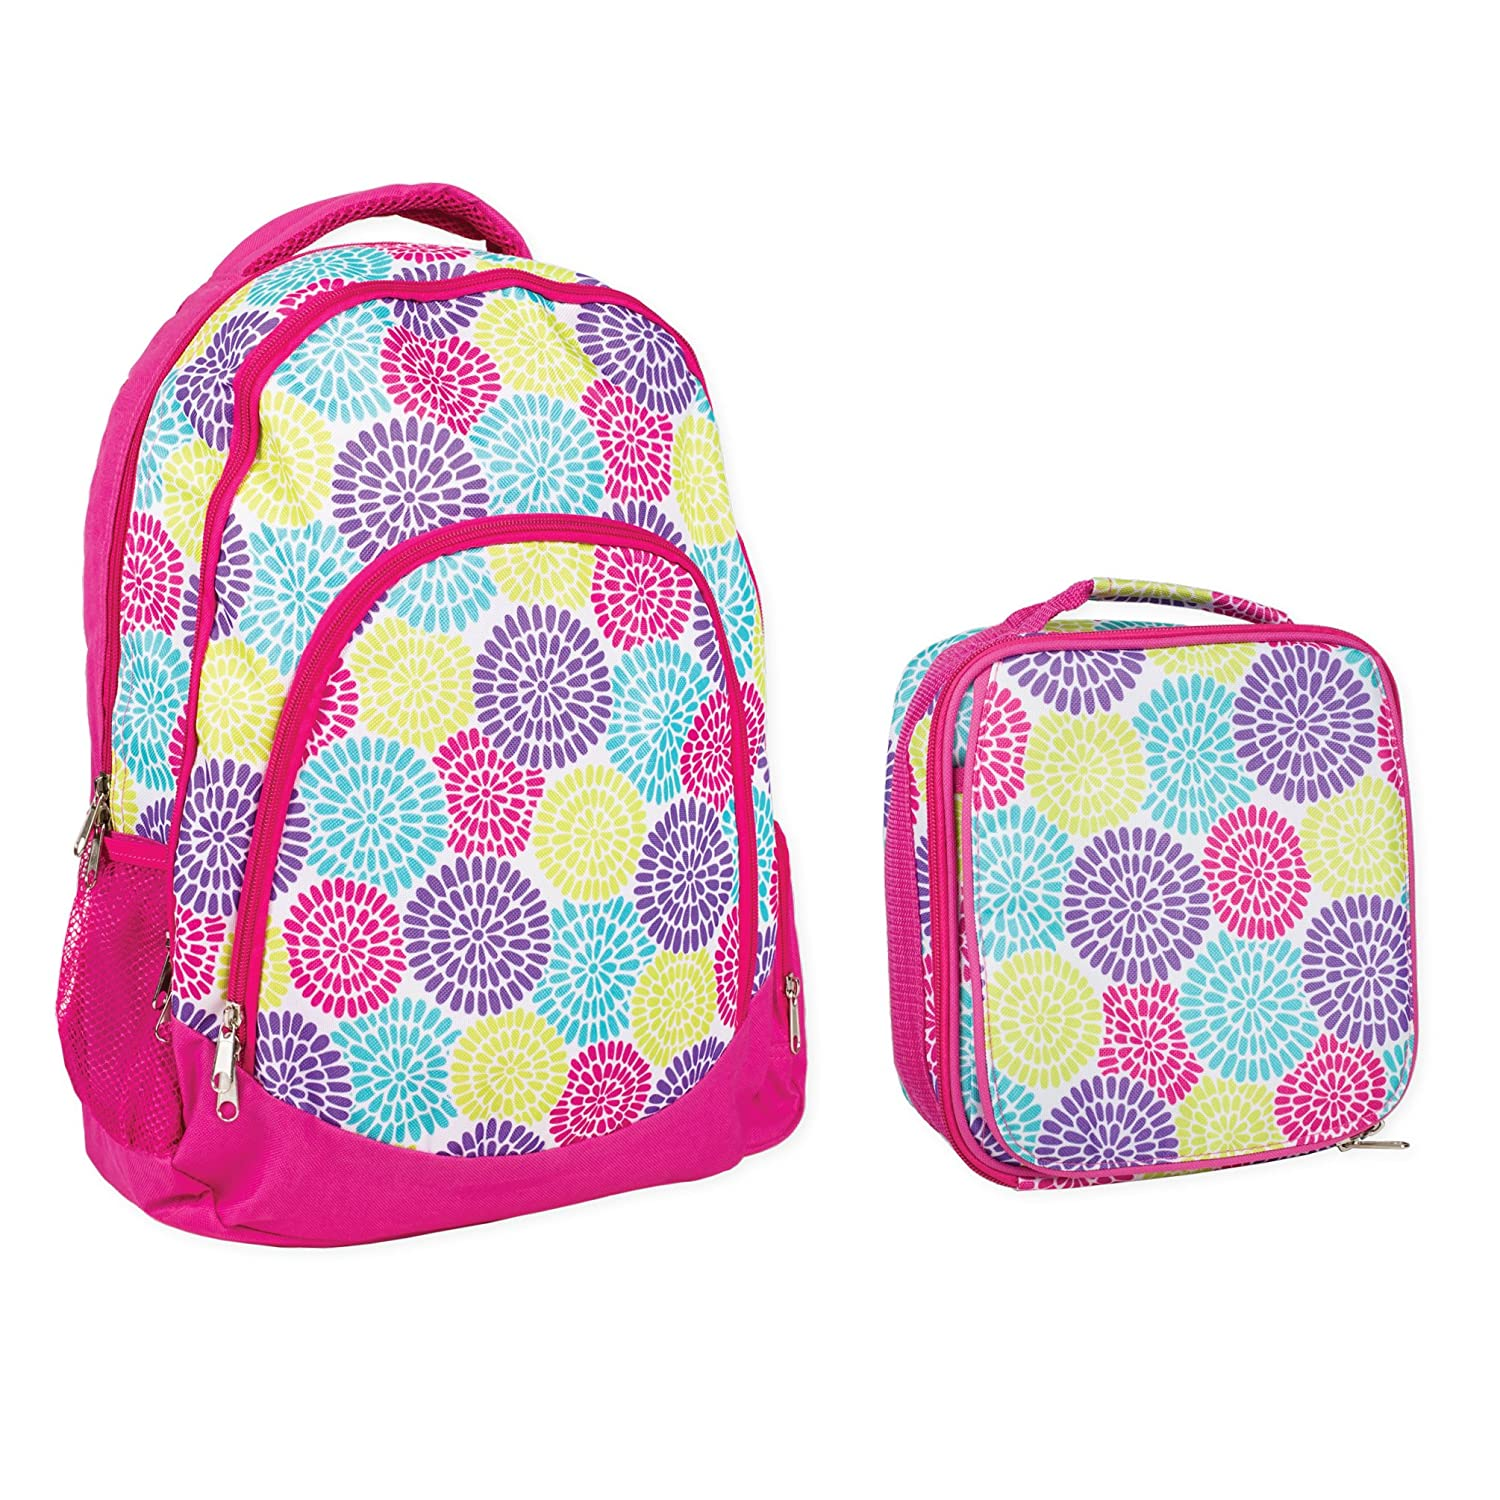 Reinforced Water Resistant School Backpack and Insulated Lunch Bag Set Flower Petal Burst